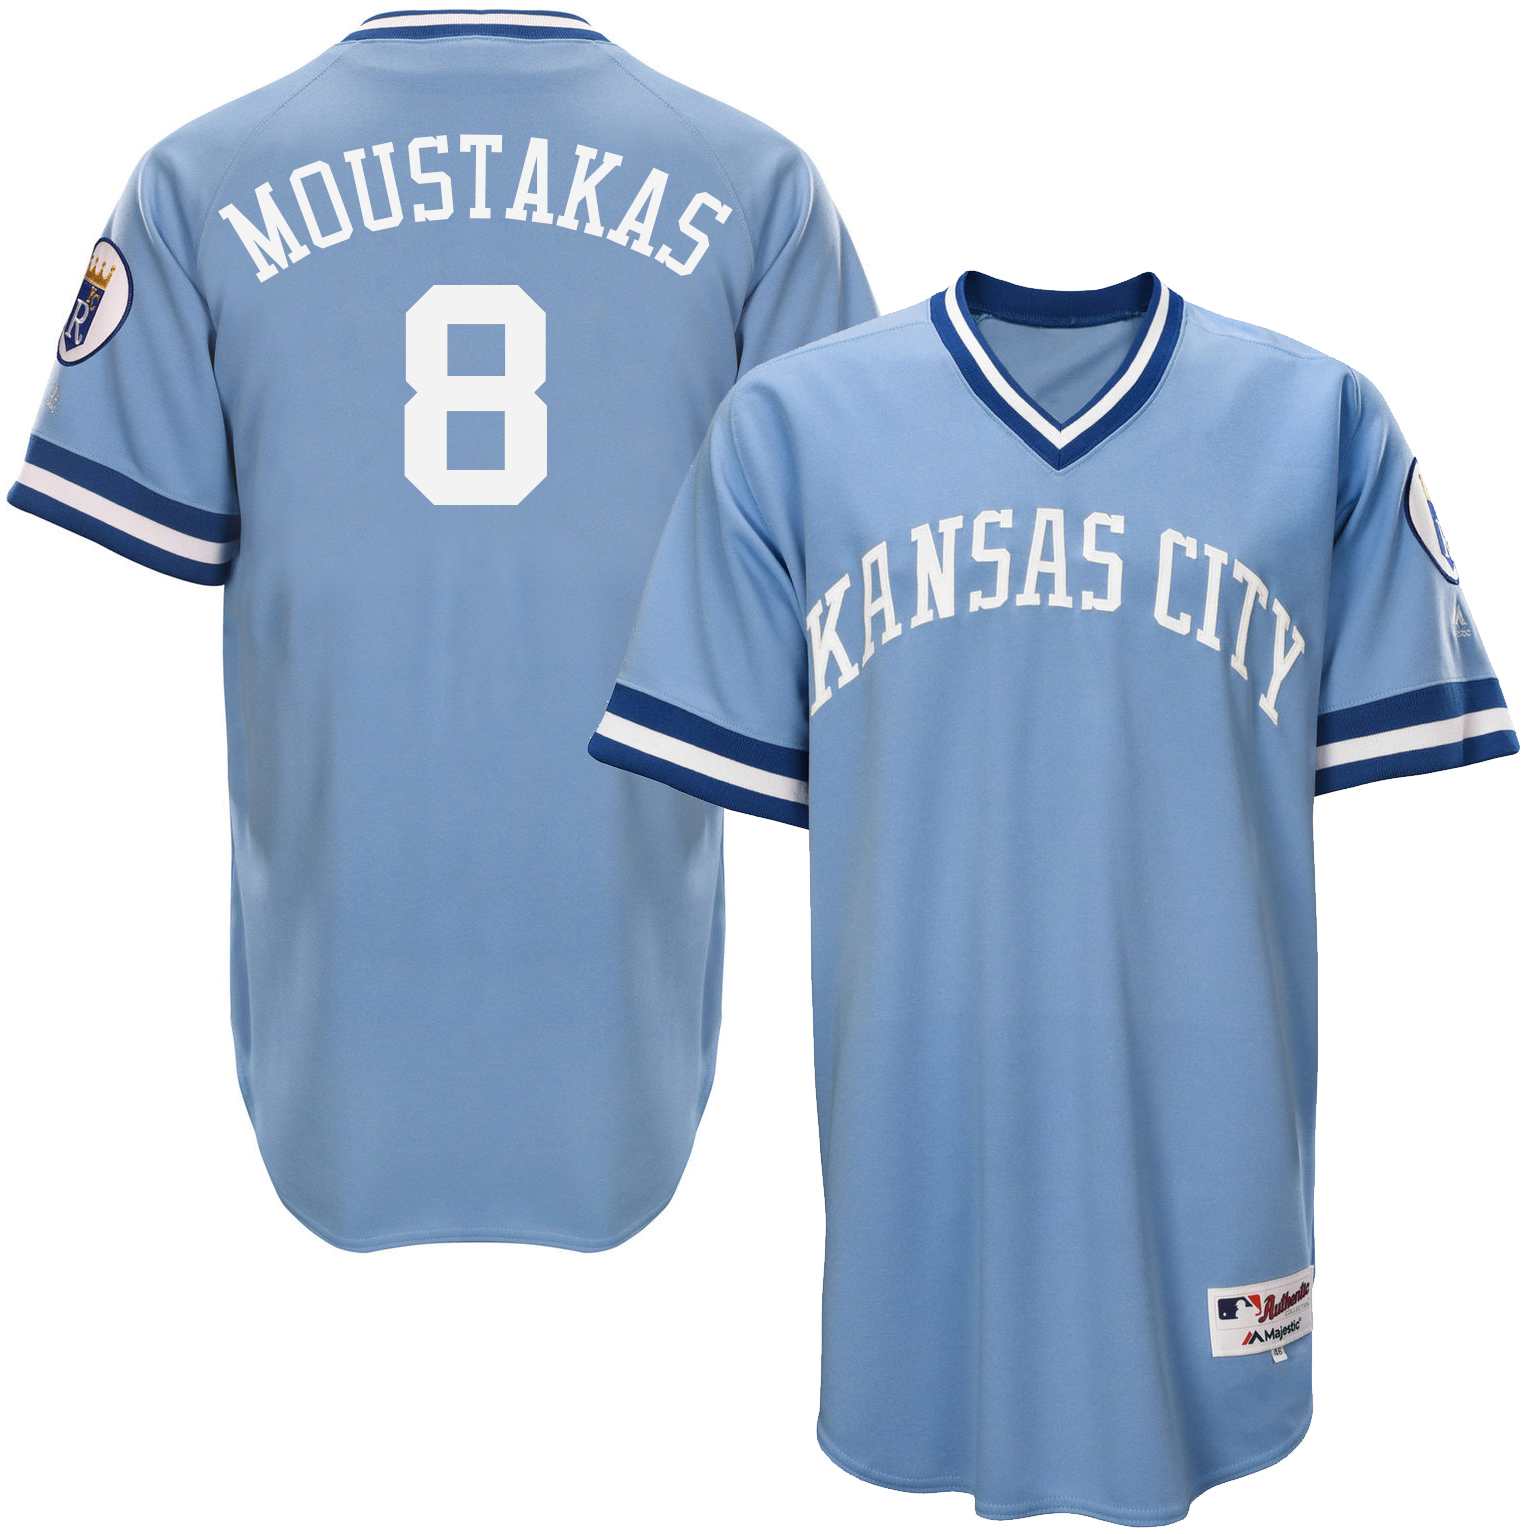 Royals 8 Mike Moustakas Light Blue Throwback Jersey